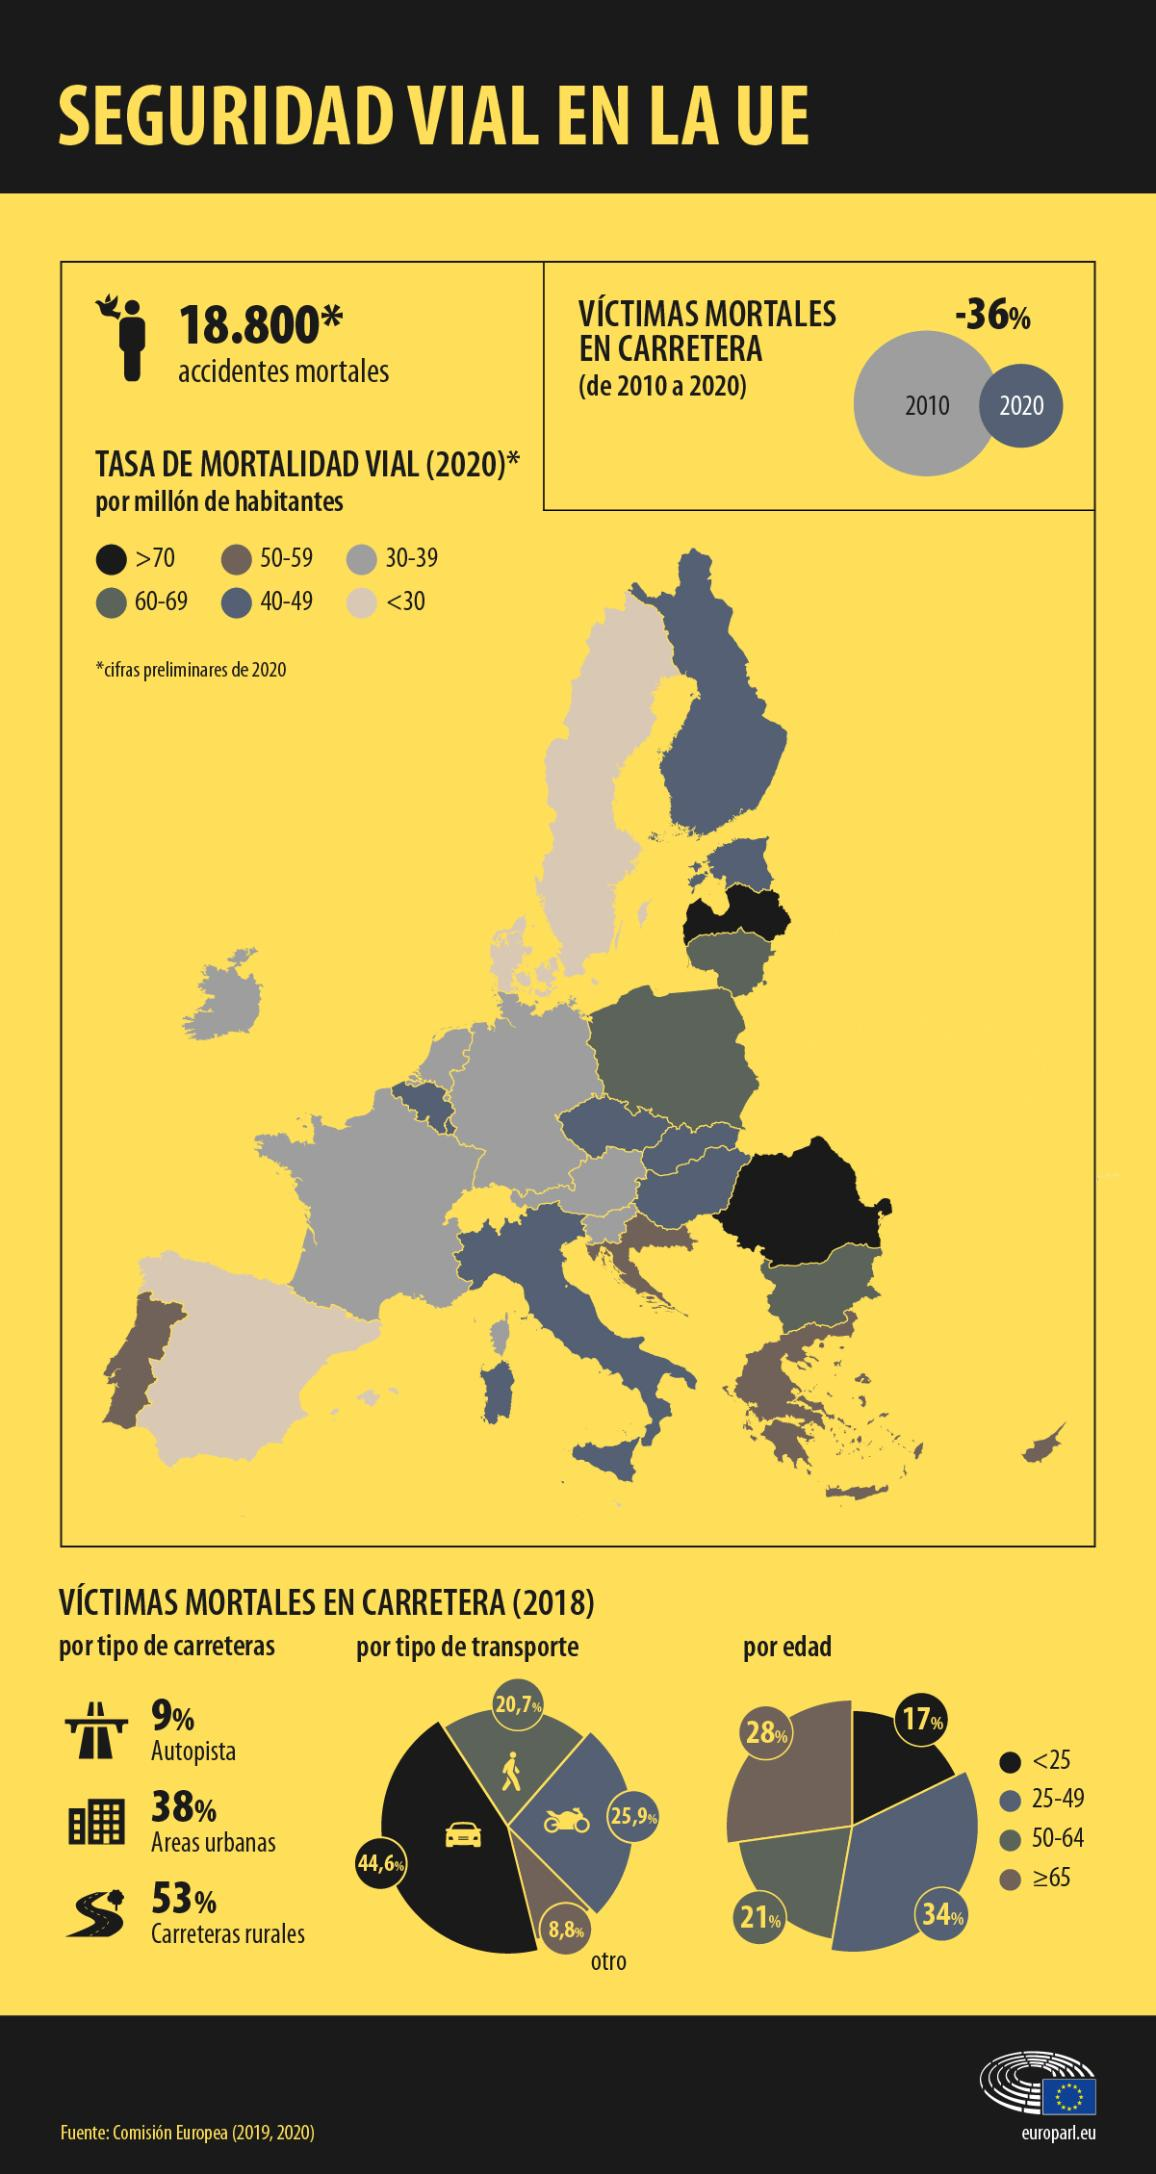 Infographic on road safety in Europe